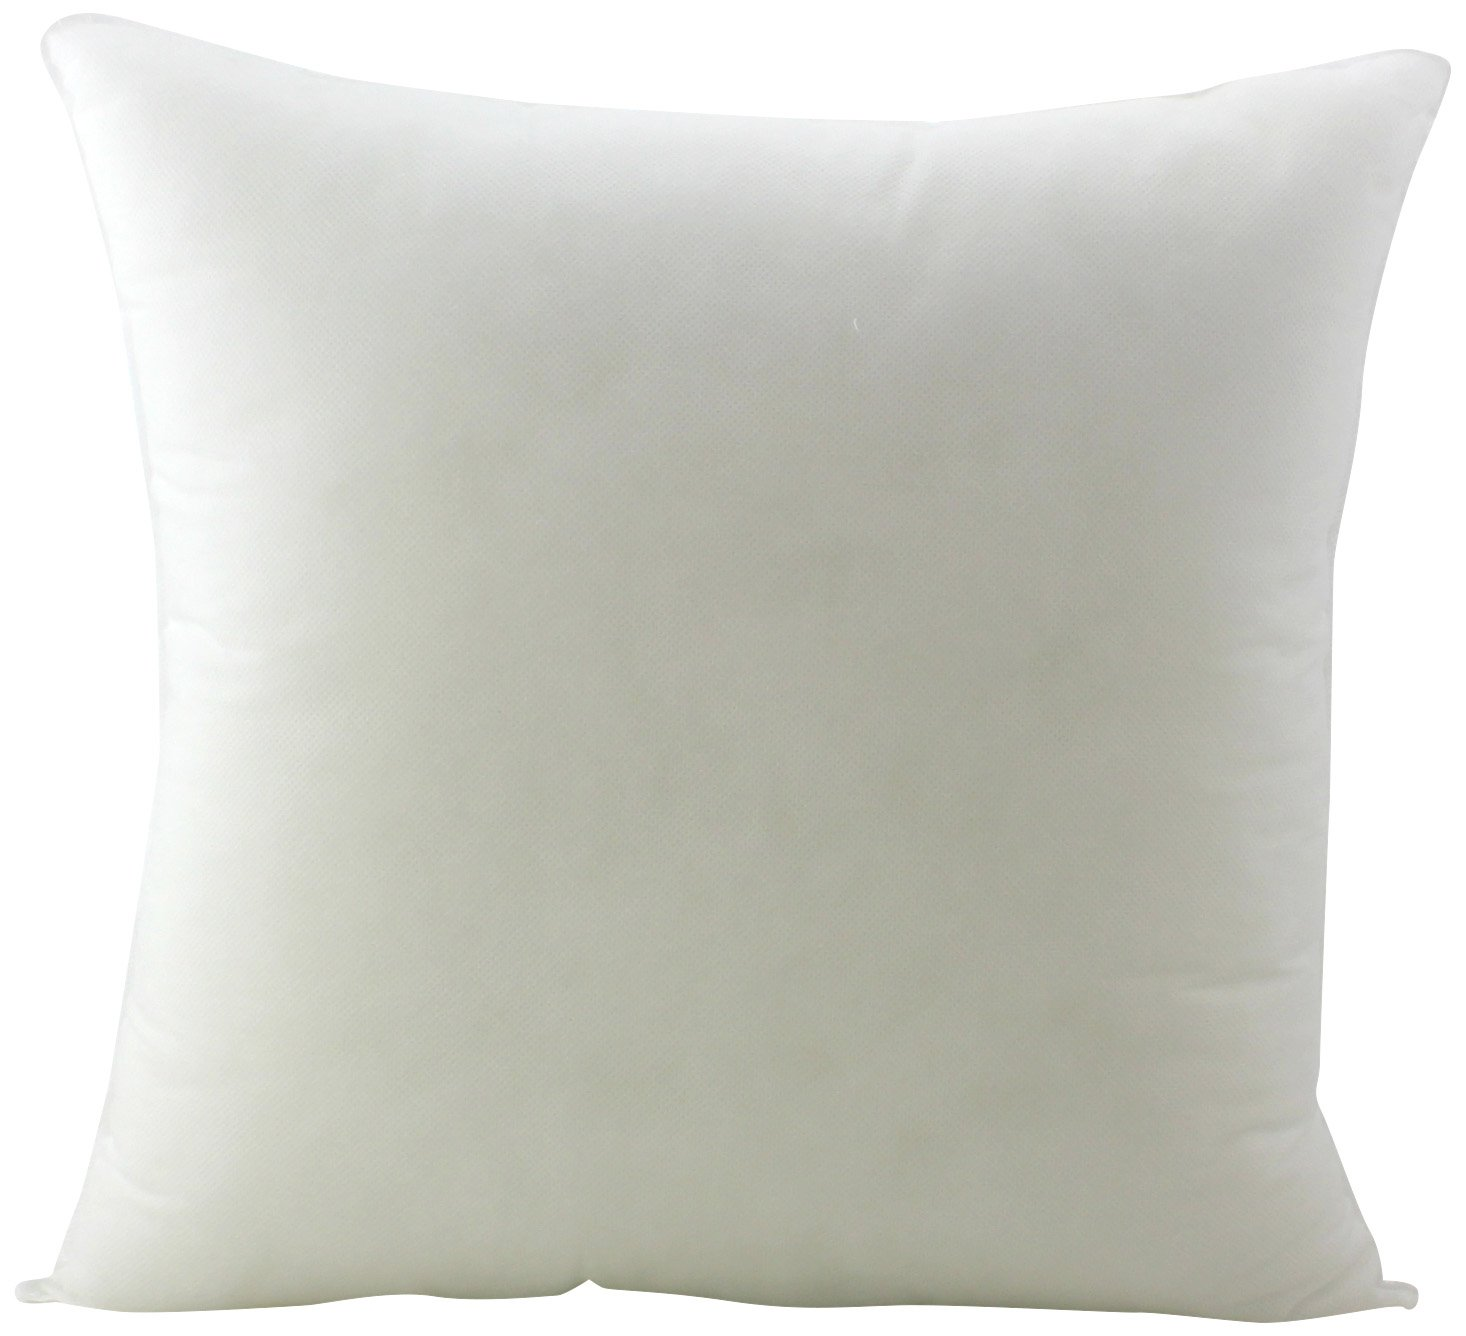 Pile of Pillows Form Insert Cushion-21X21-Inch-4 Pack 6634